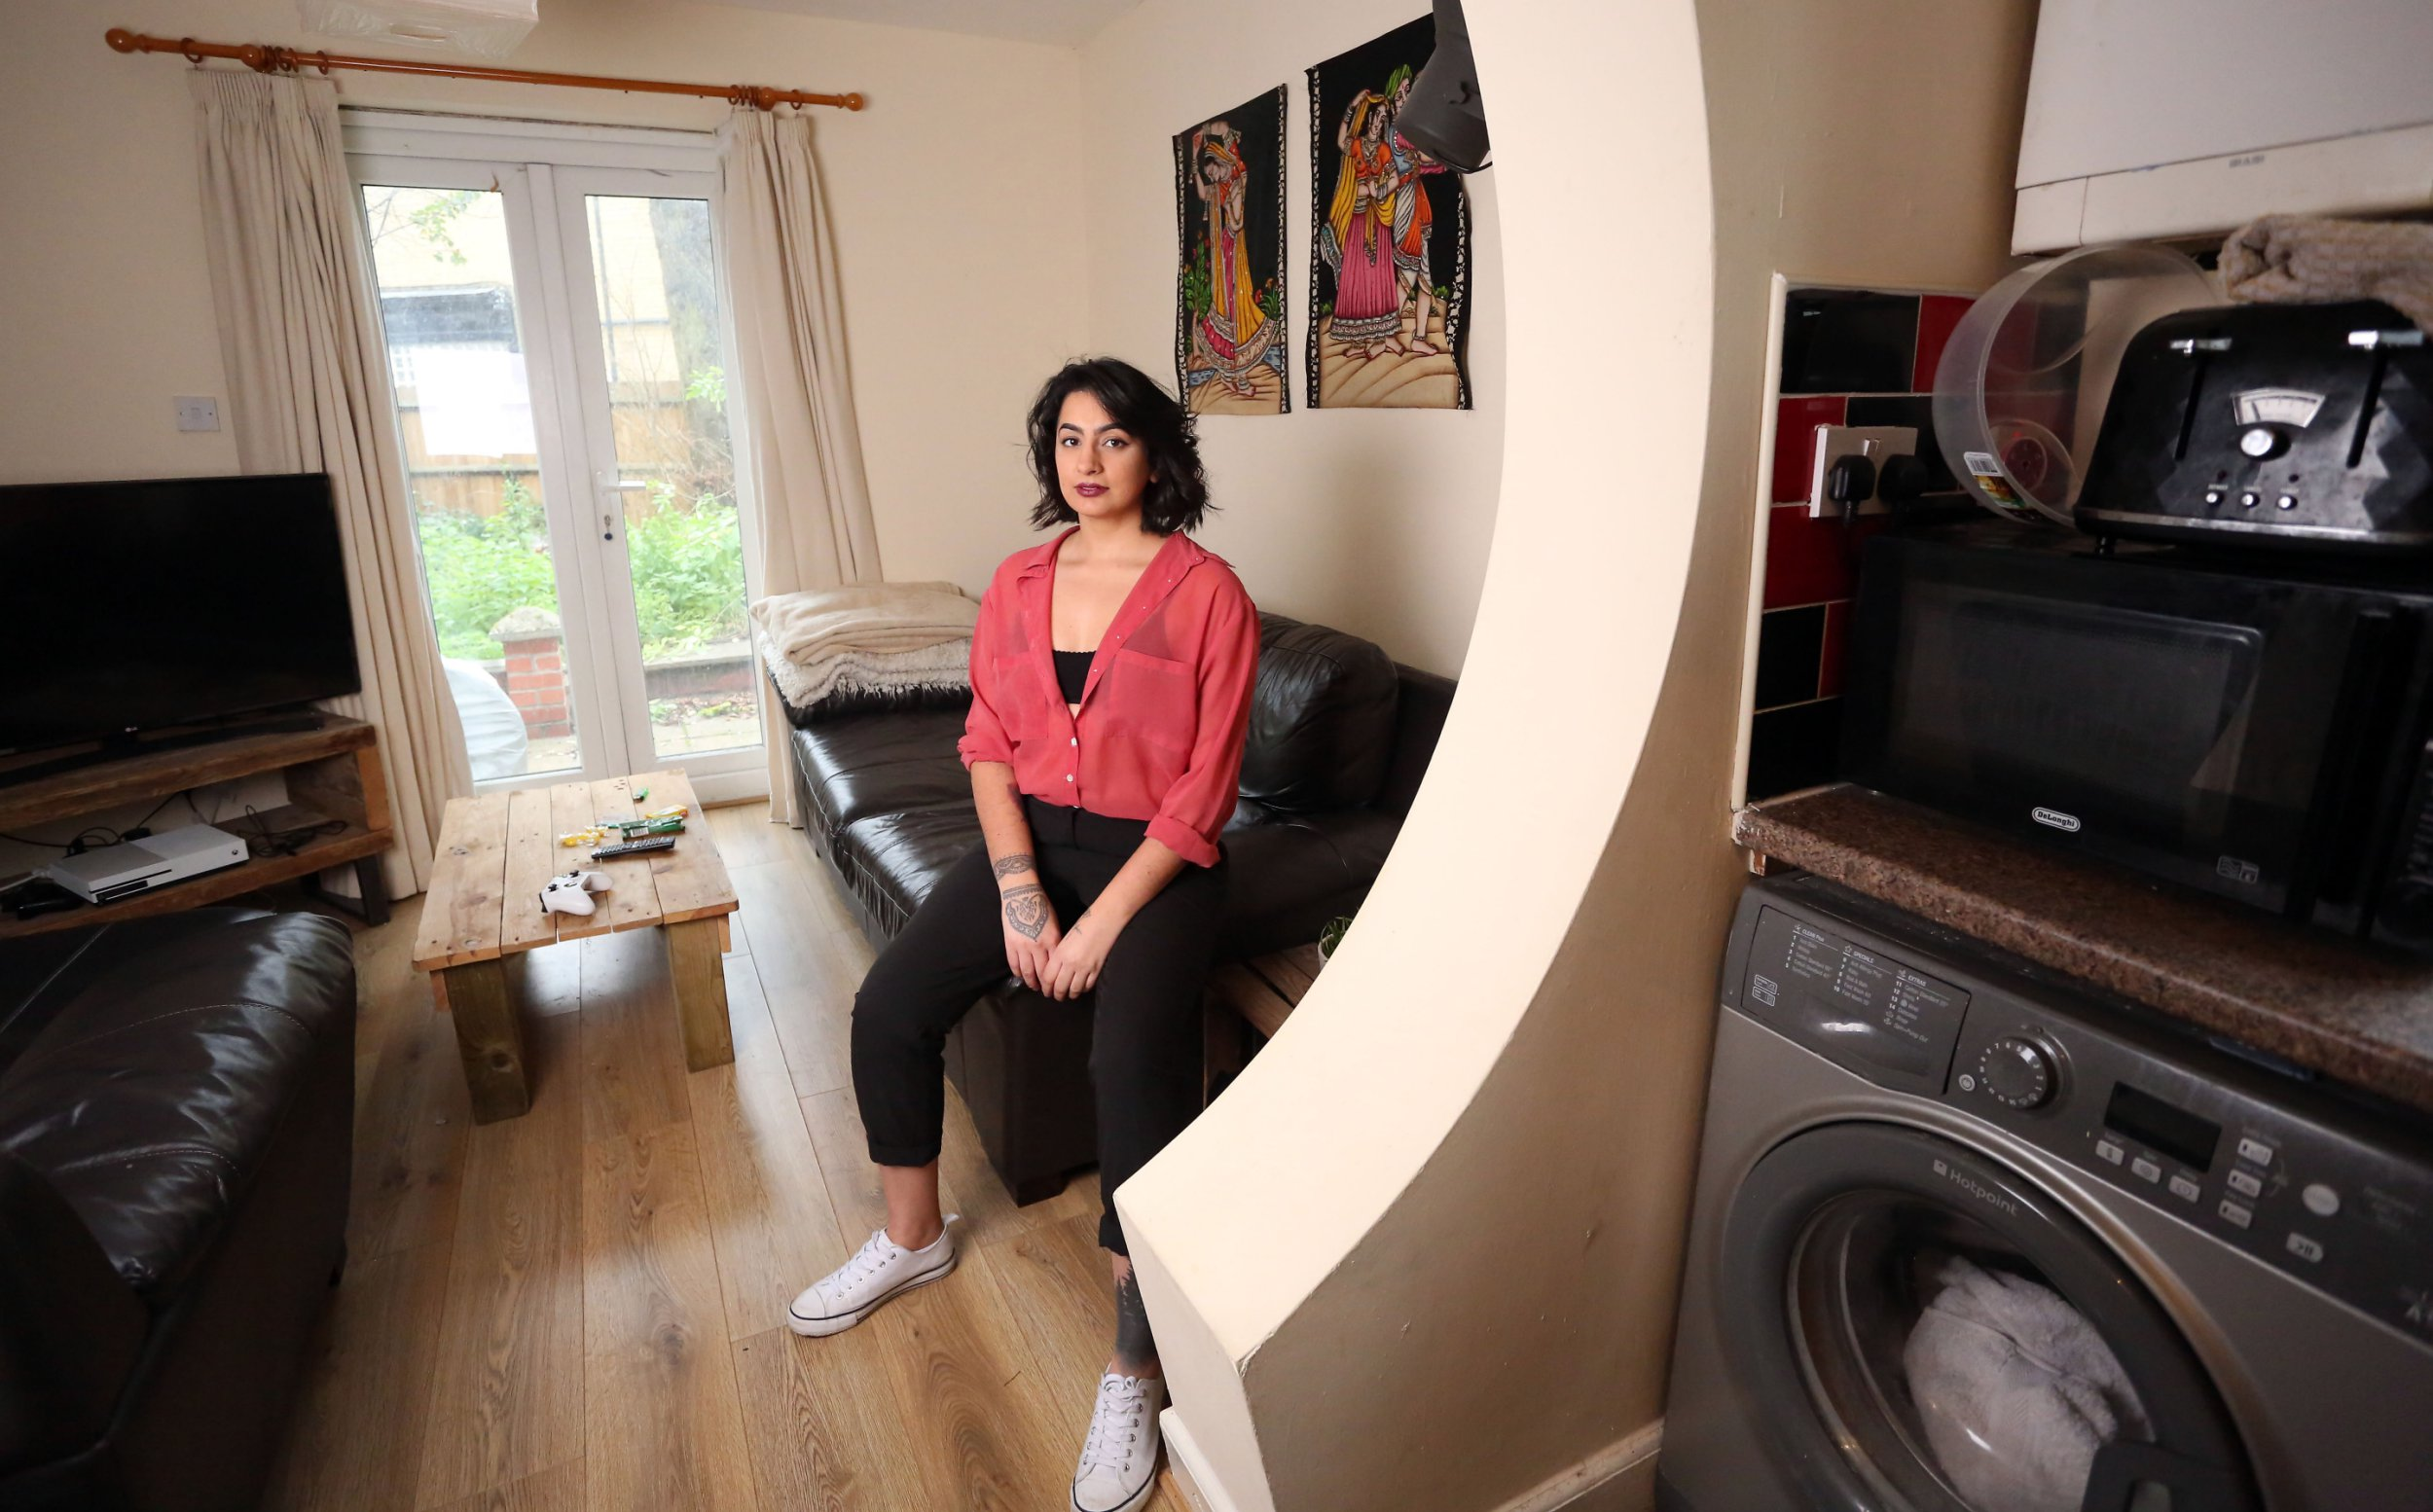 What I Rent: Sharan, £675 a month to share a two-bedroom flat in Stoke Newington